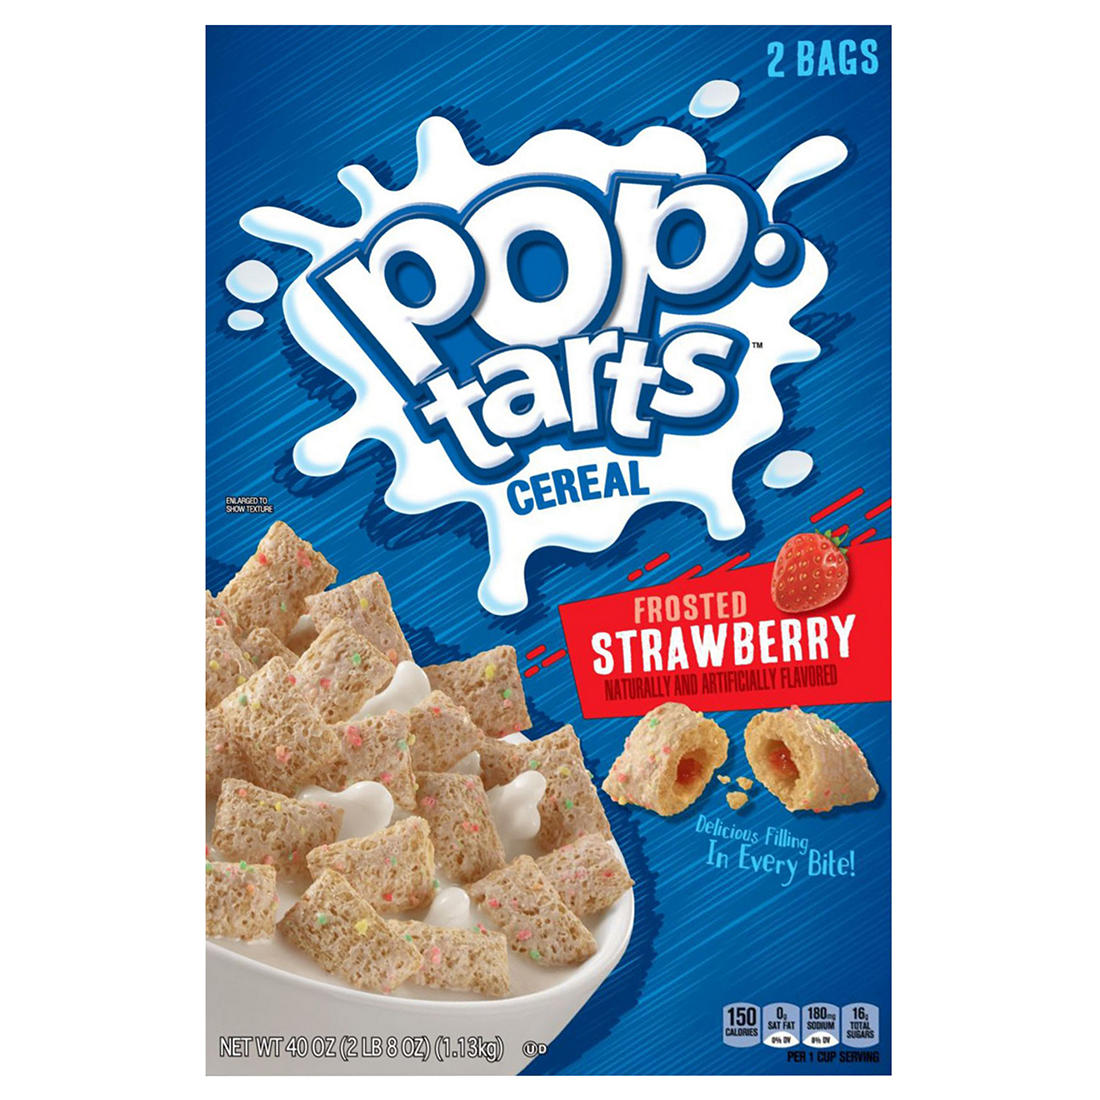 photo about Pop Tarts Coupon Printable identified as Kelloggs Pop-Tarts Frosted Strawberry Cereal, 2 pk./20 oz.